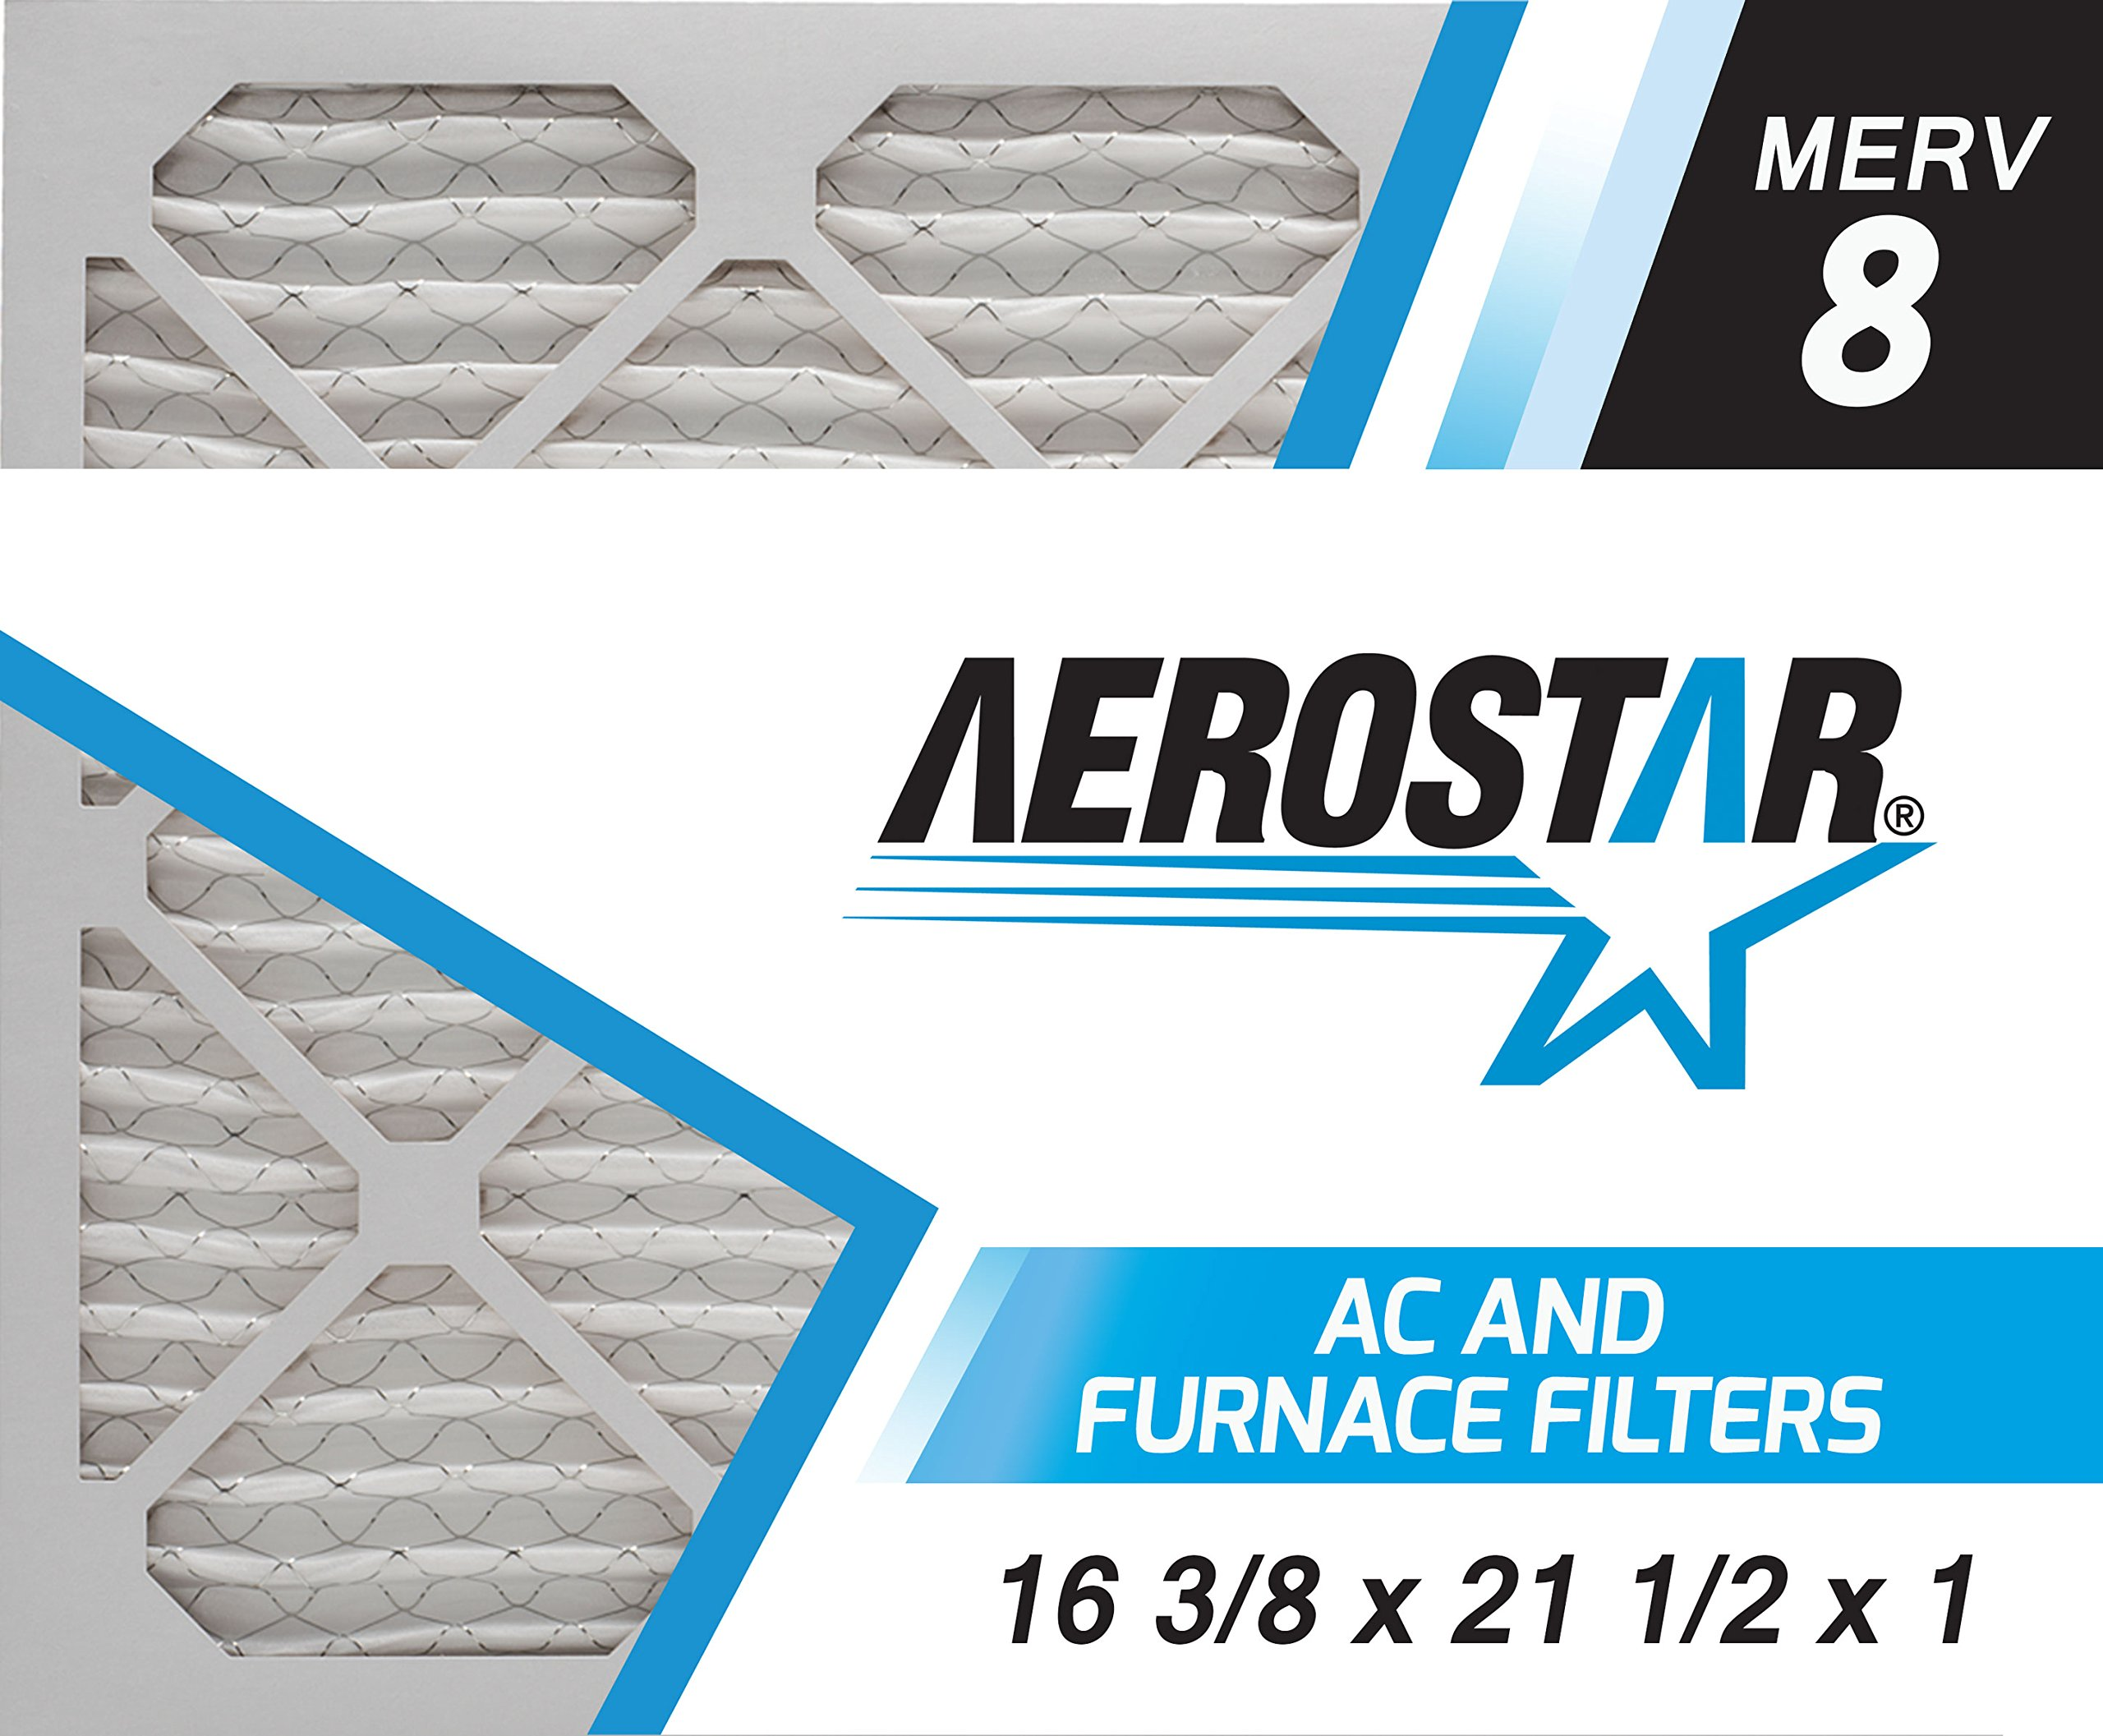 Aerostar 16 3/8x21 1/2x1 MERV 8 Pleated Air Filter, Made in the USA, 6-Pack